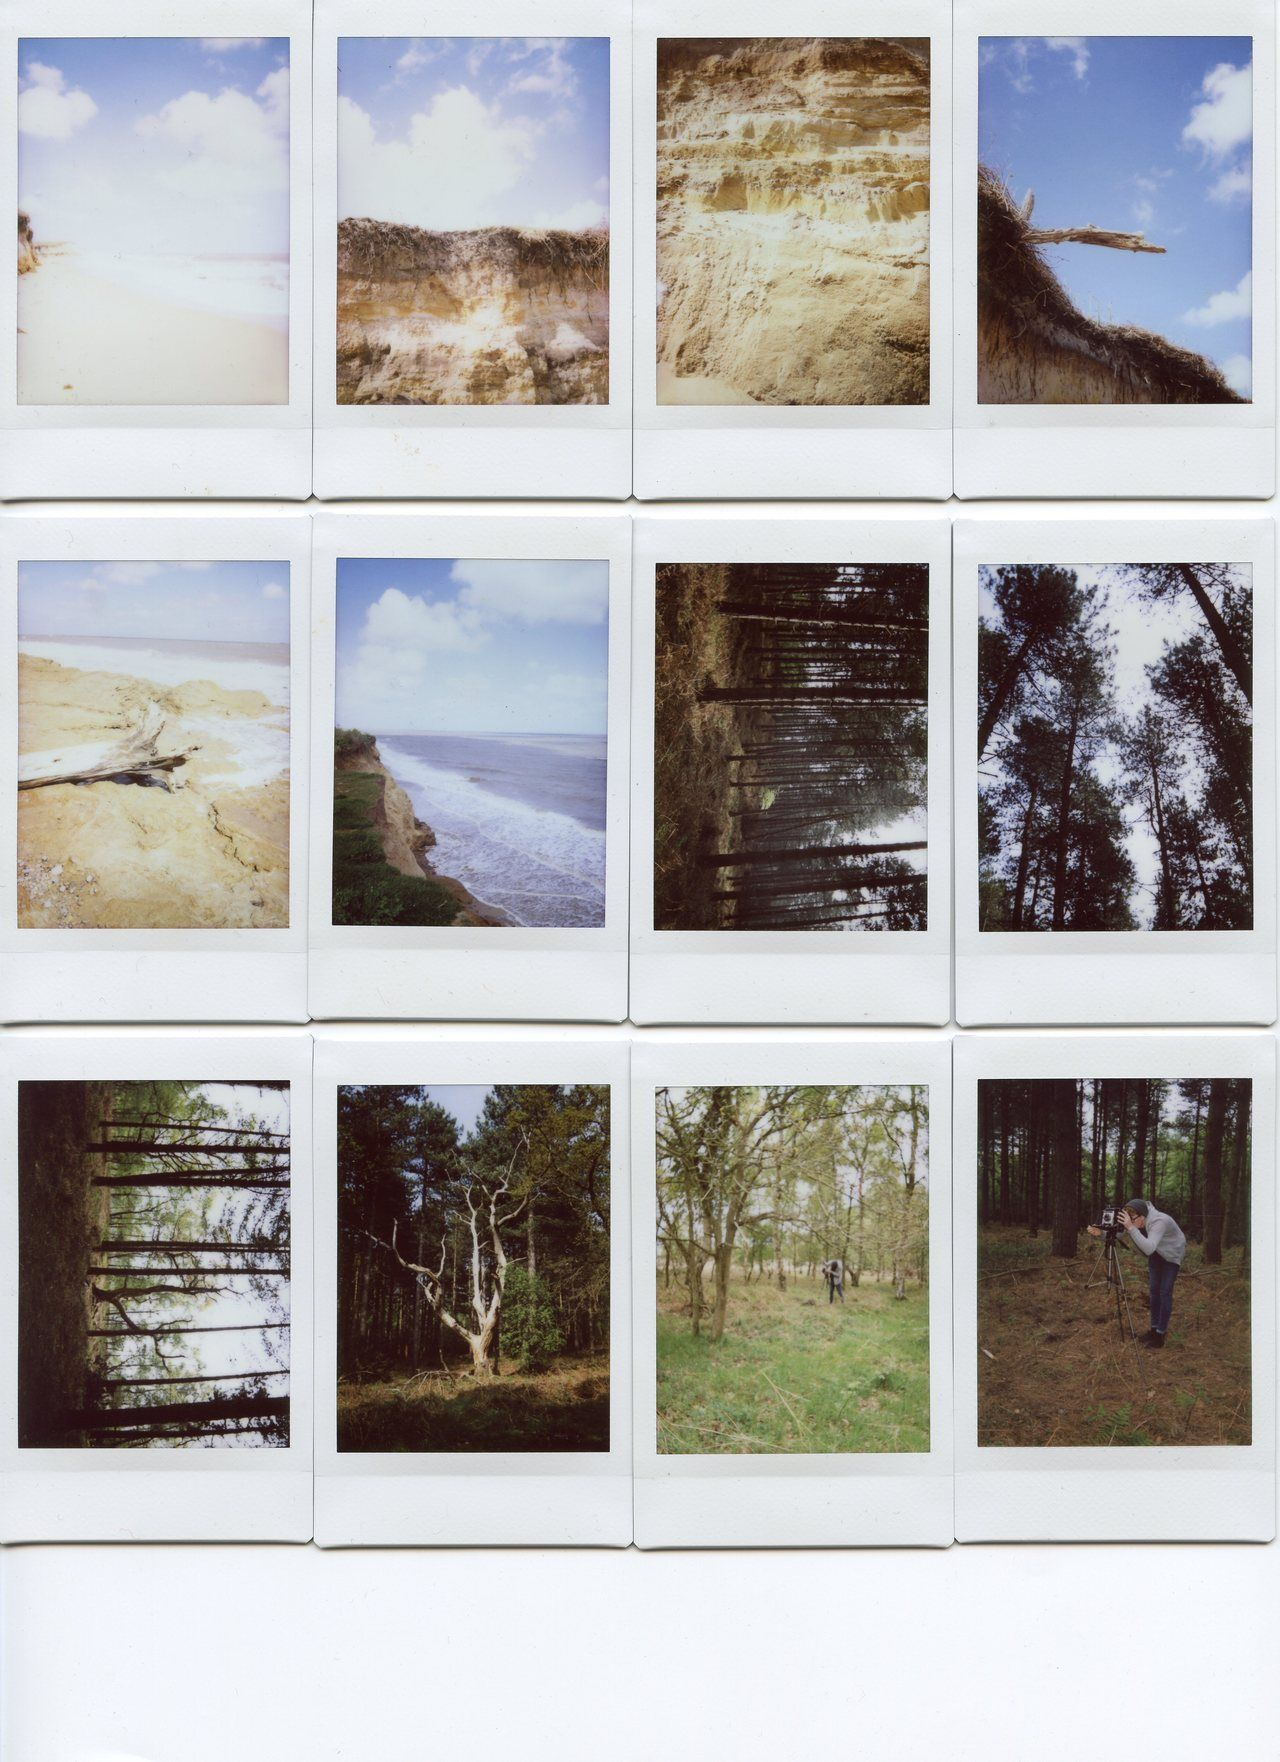 Collage Instax jackdaviddelaney: instax backlog dunwich and covehithe Collage Instax